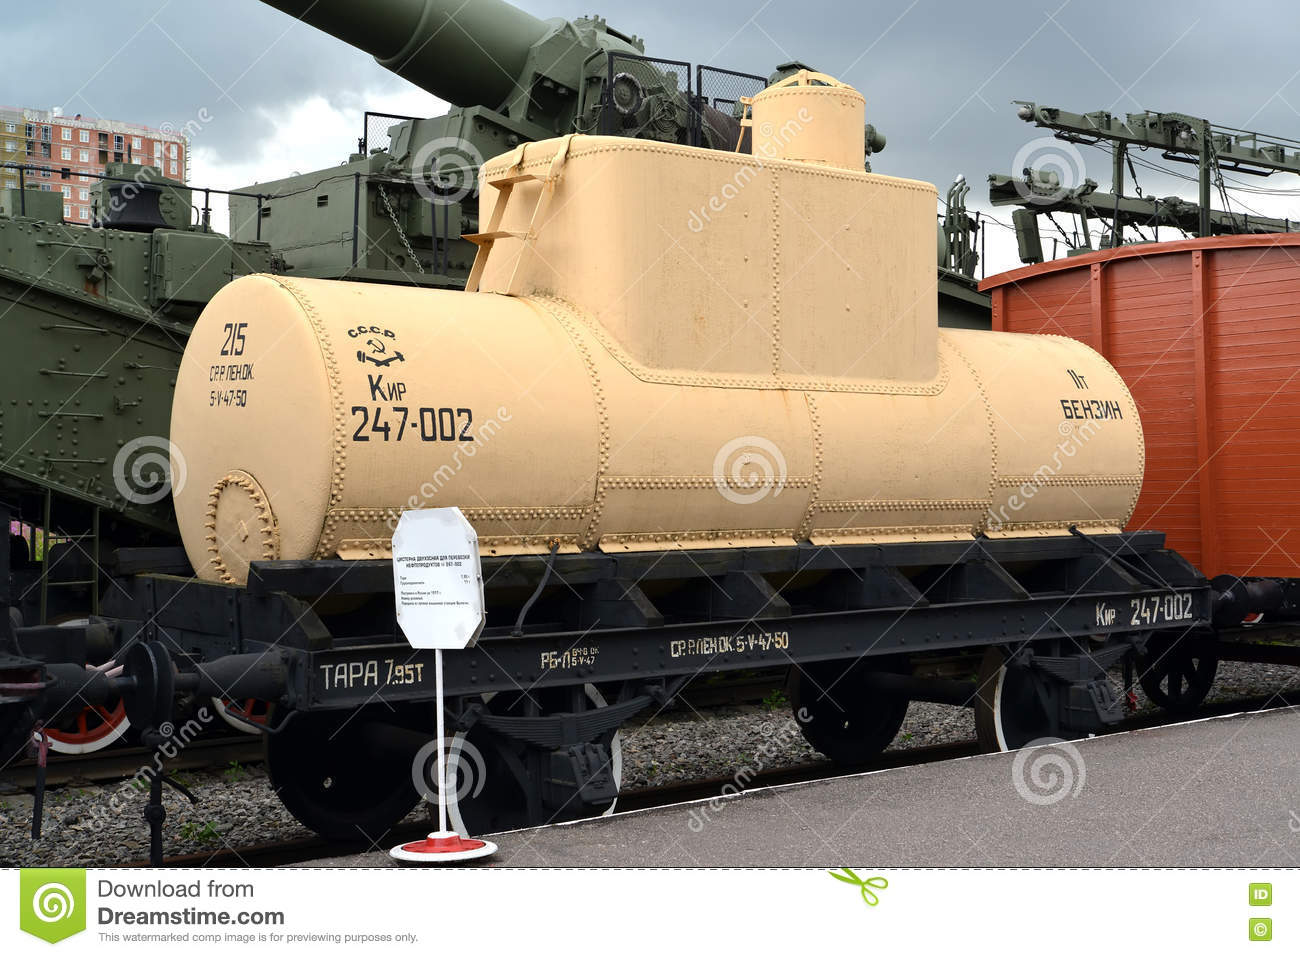 ST. PETERSBURG, RUSSIA. The tank two-axis for transportation of oil products No. 247-002